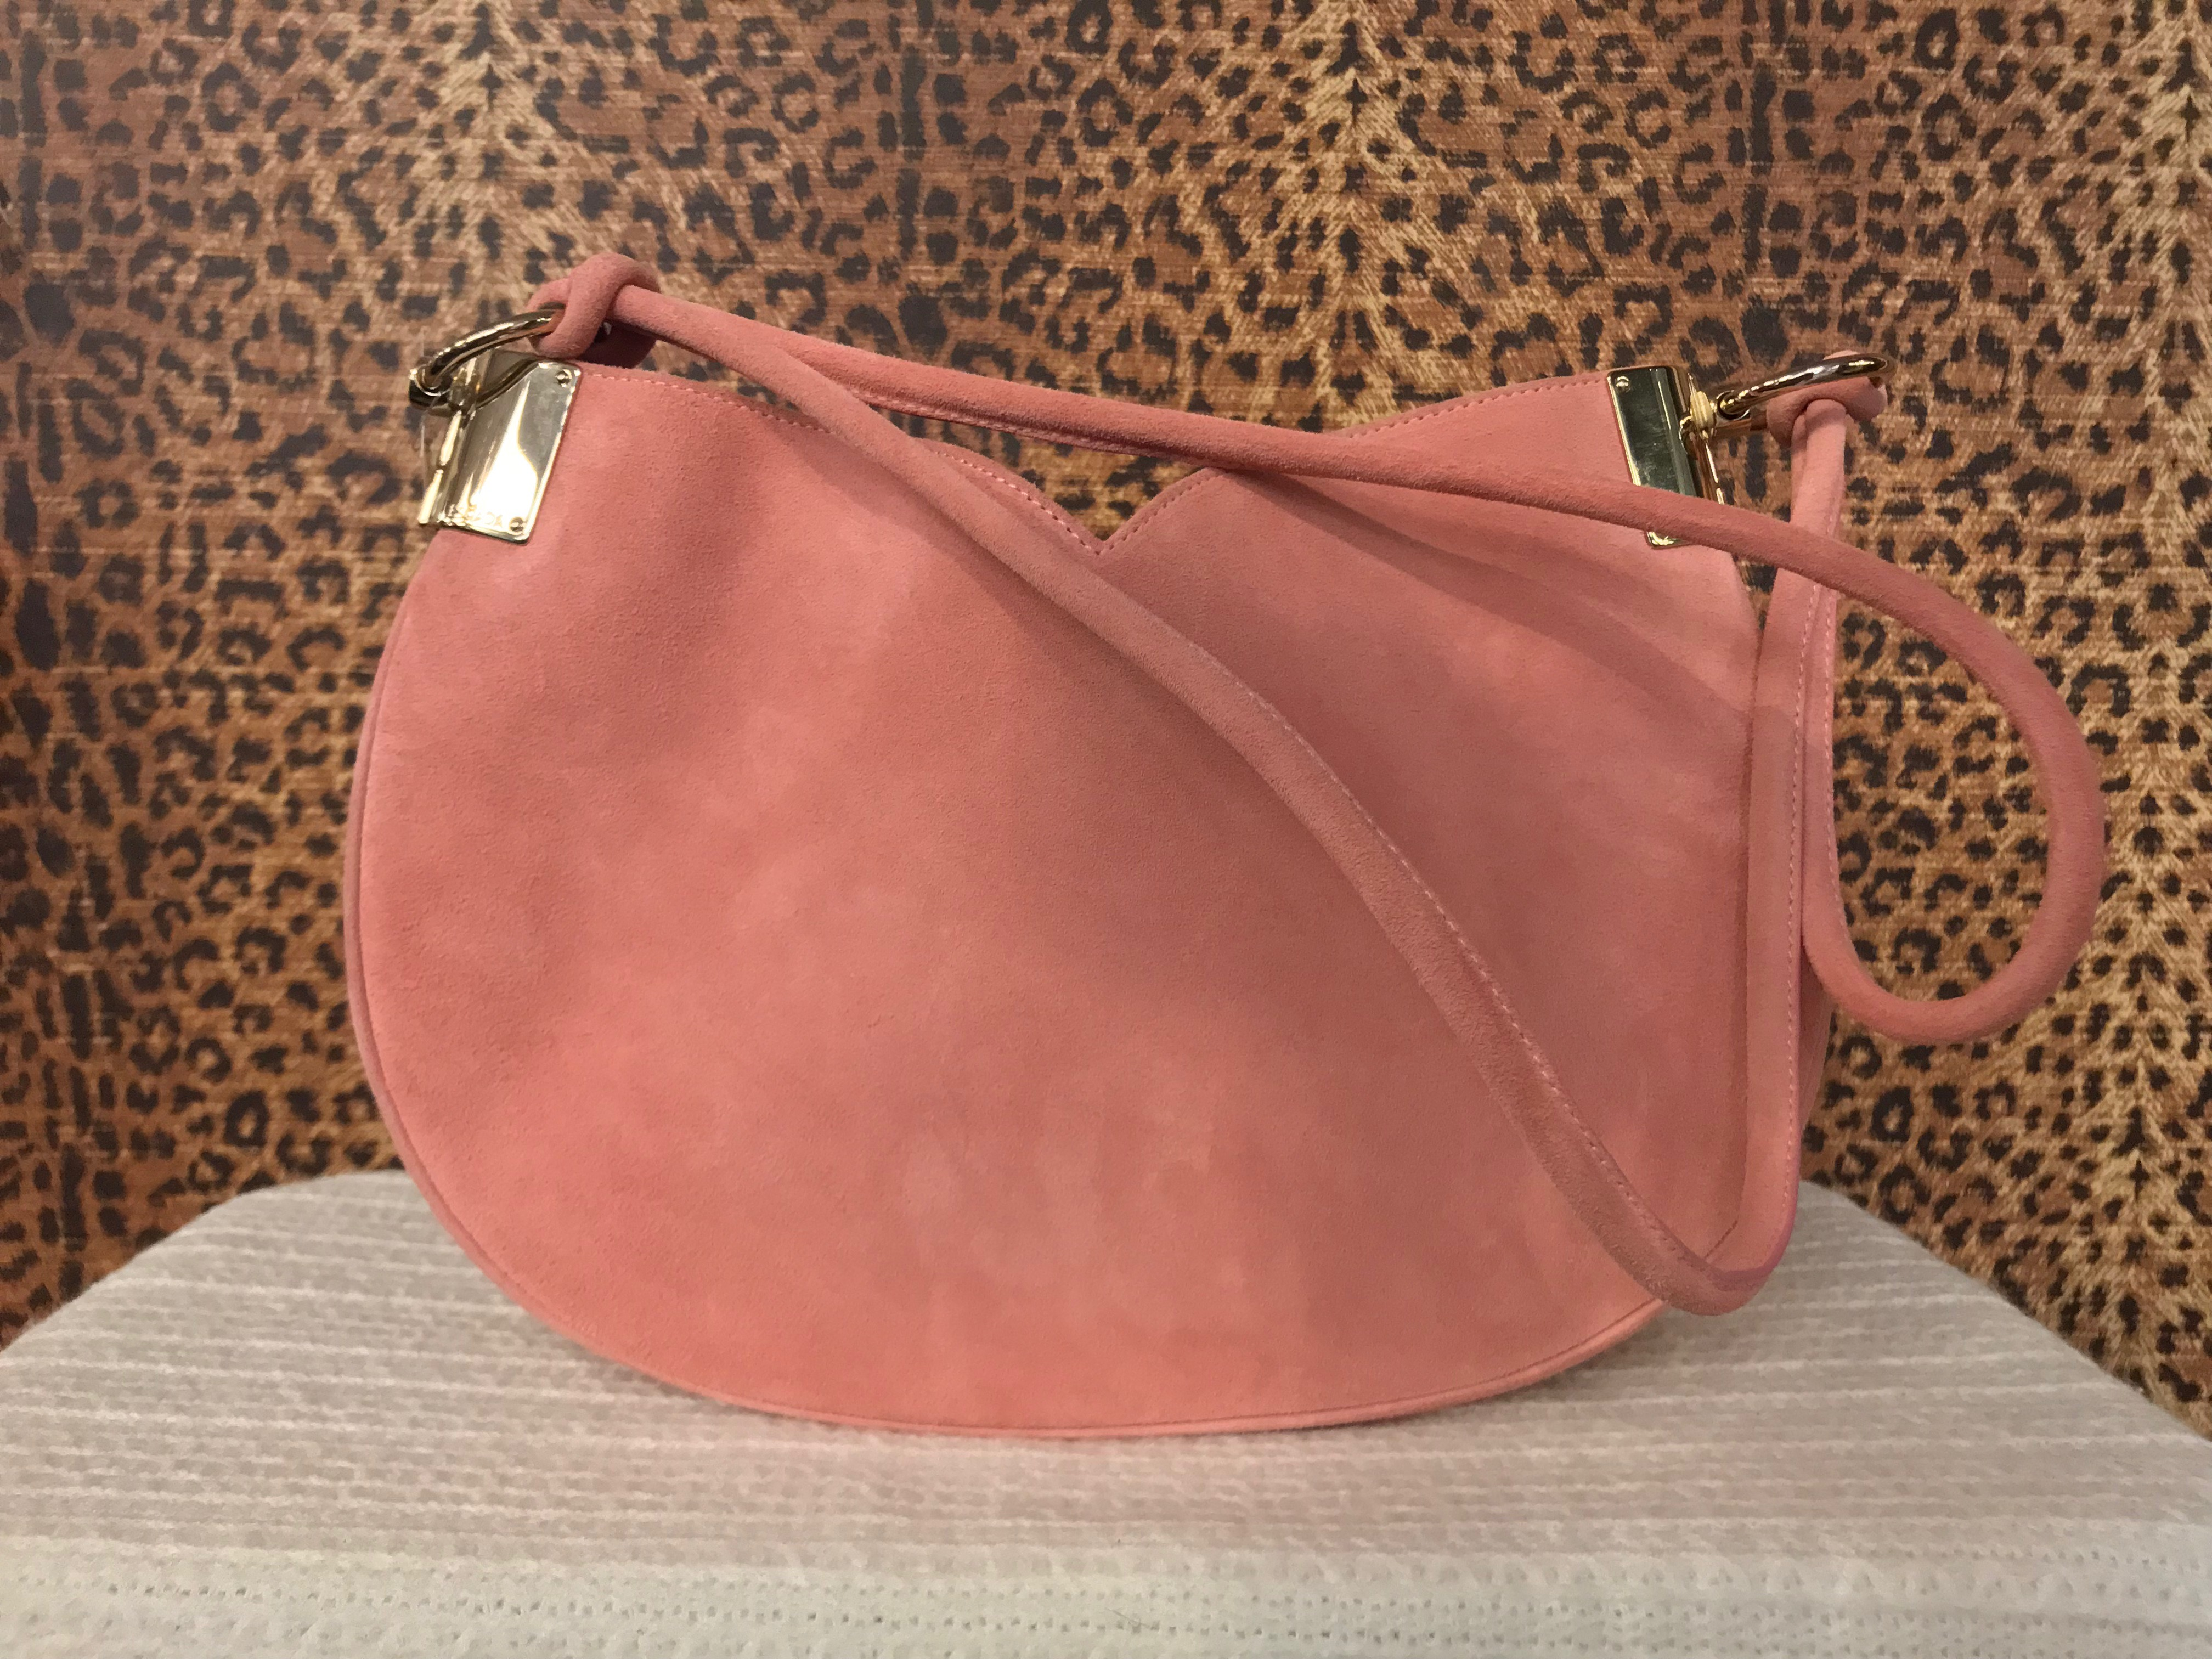 Escada~ Pink, Suede,  Dbl Handle, Purses, Handbags Price: $248.99